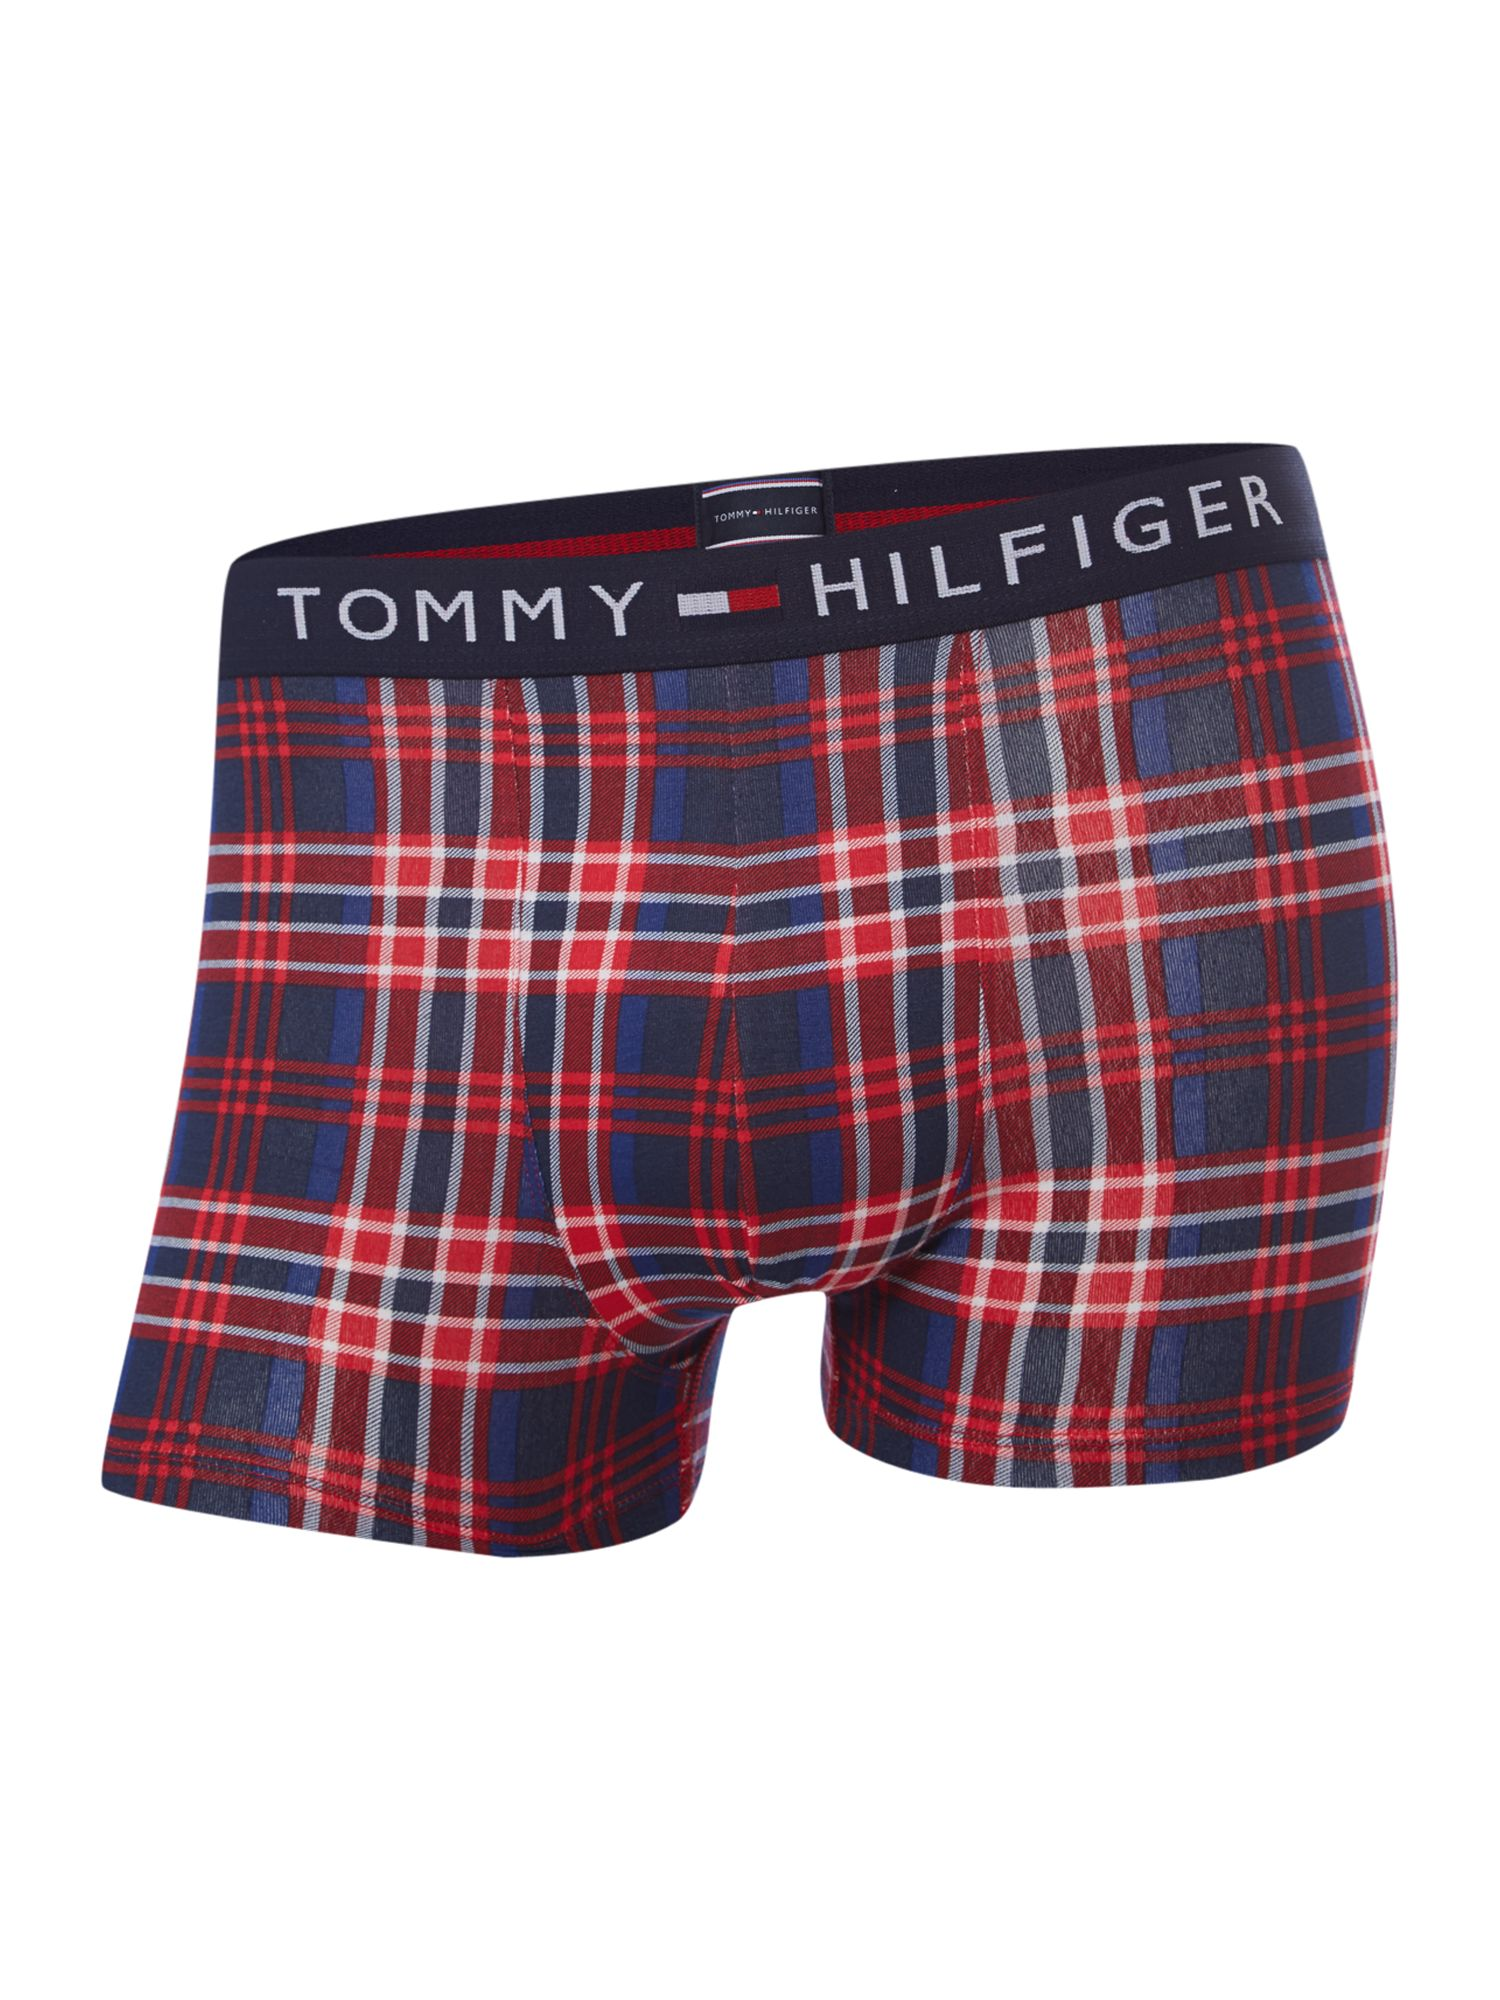 3 pack check stripe and plain underwear trunk